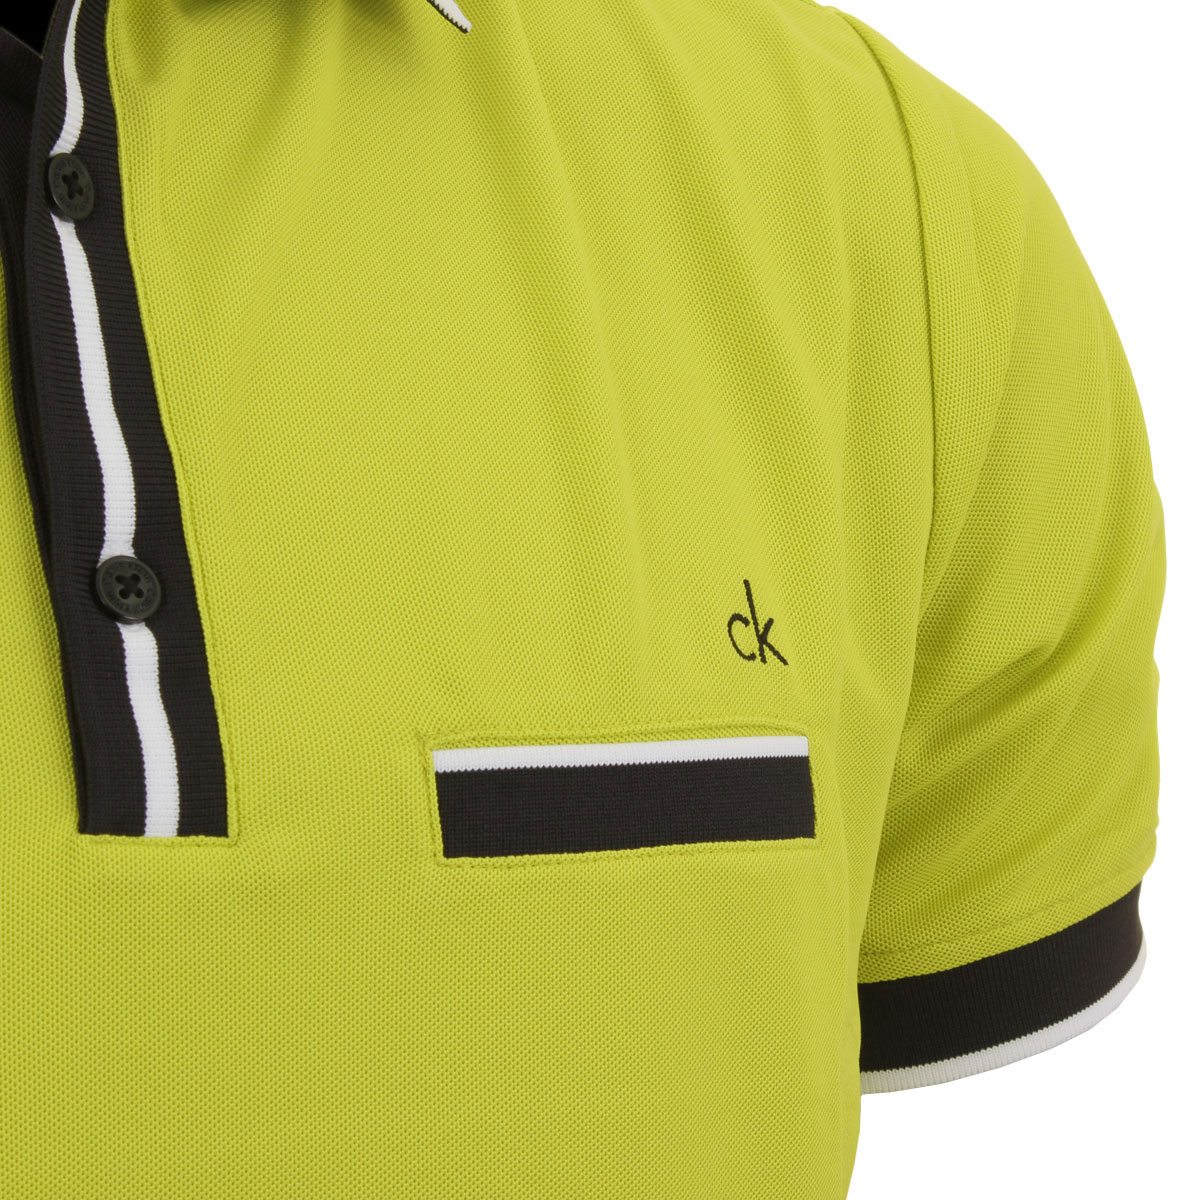 Calvin klein golf 2015 mens ck impact polo shirt modern Modern fit golf shirt